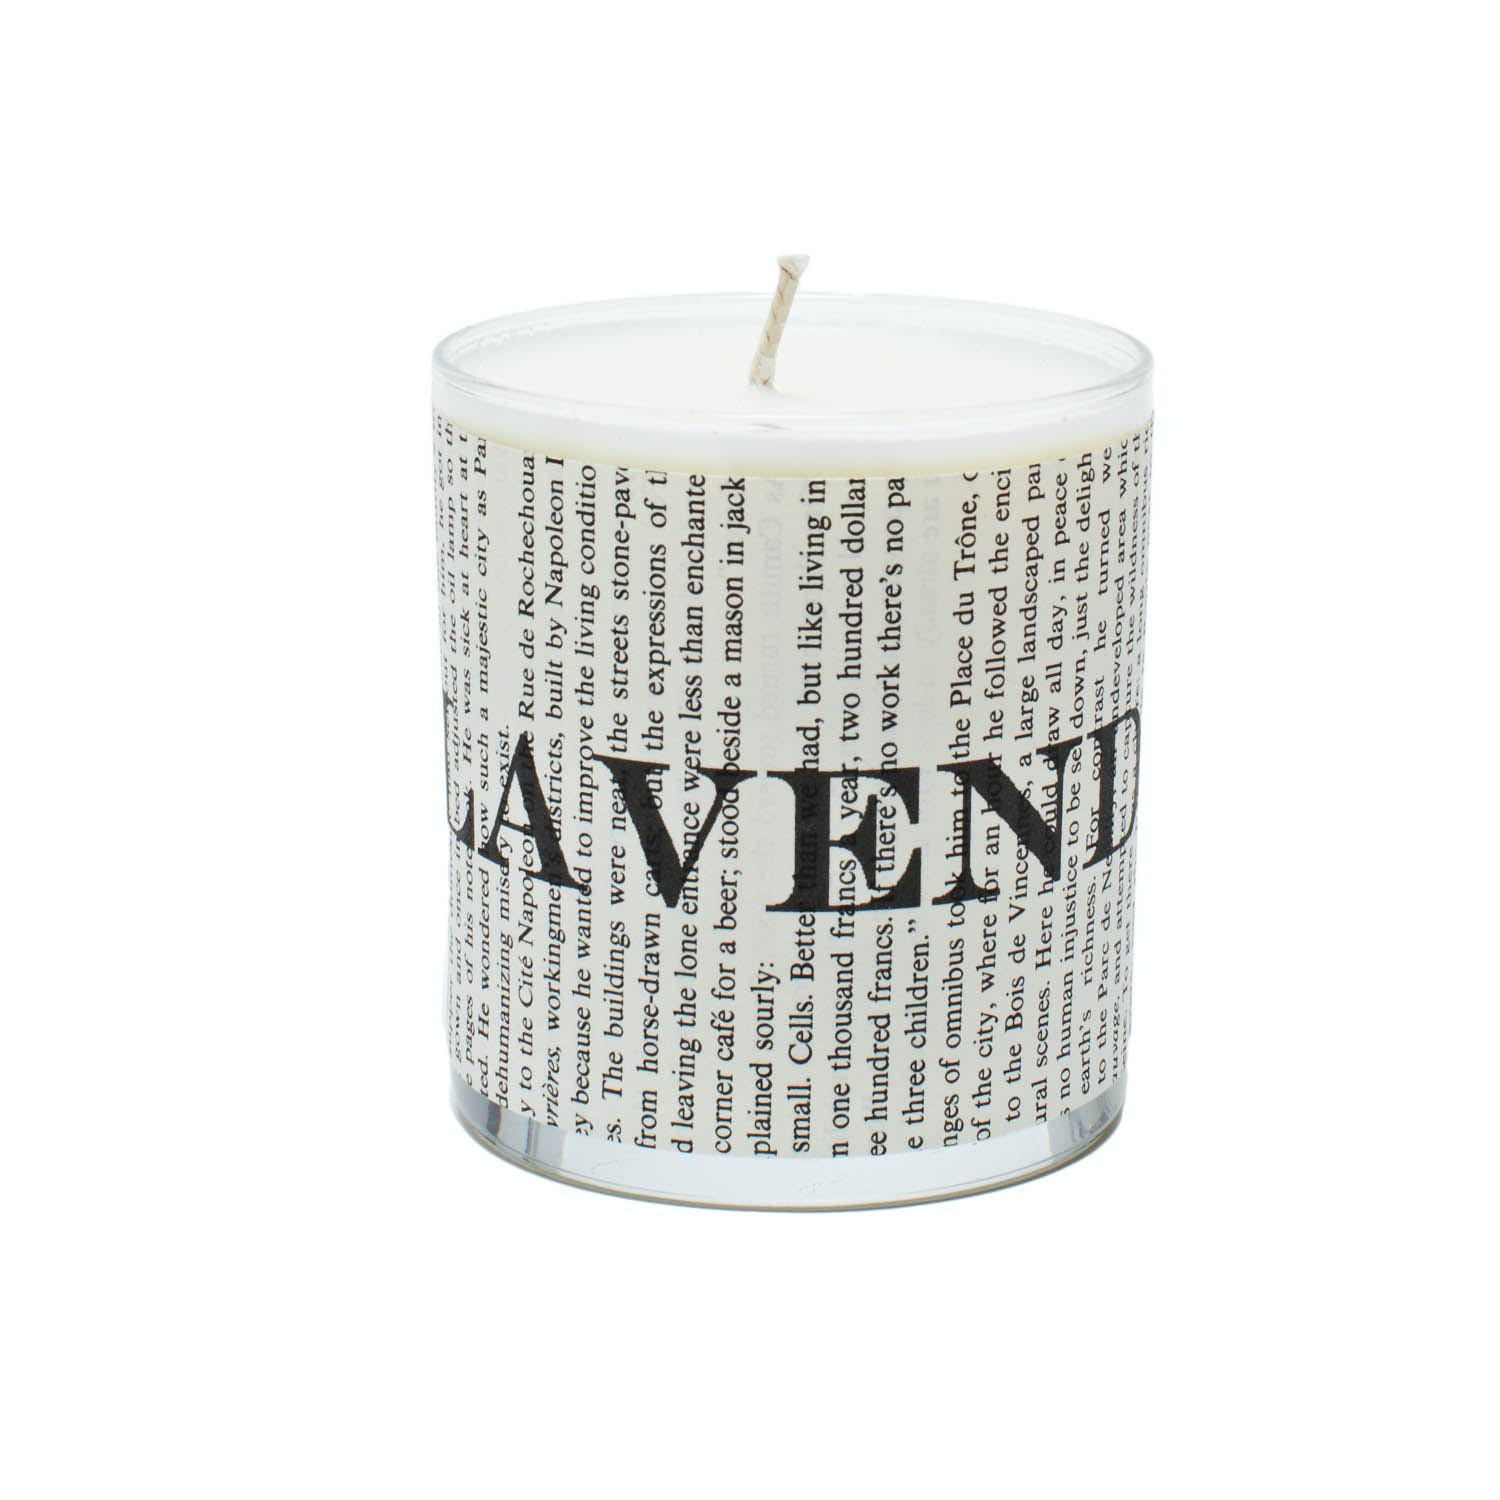 Blithe and Bonny Lavender Candle